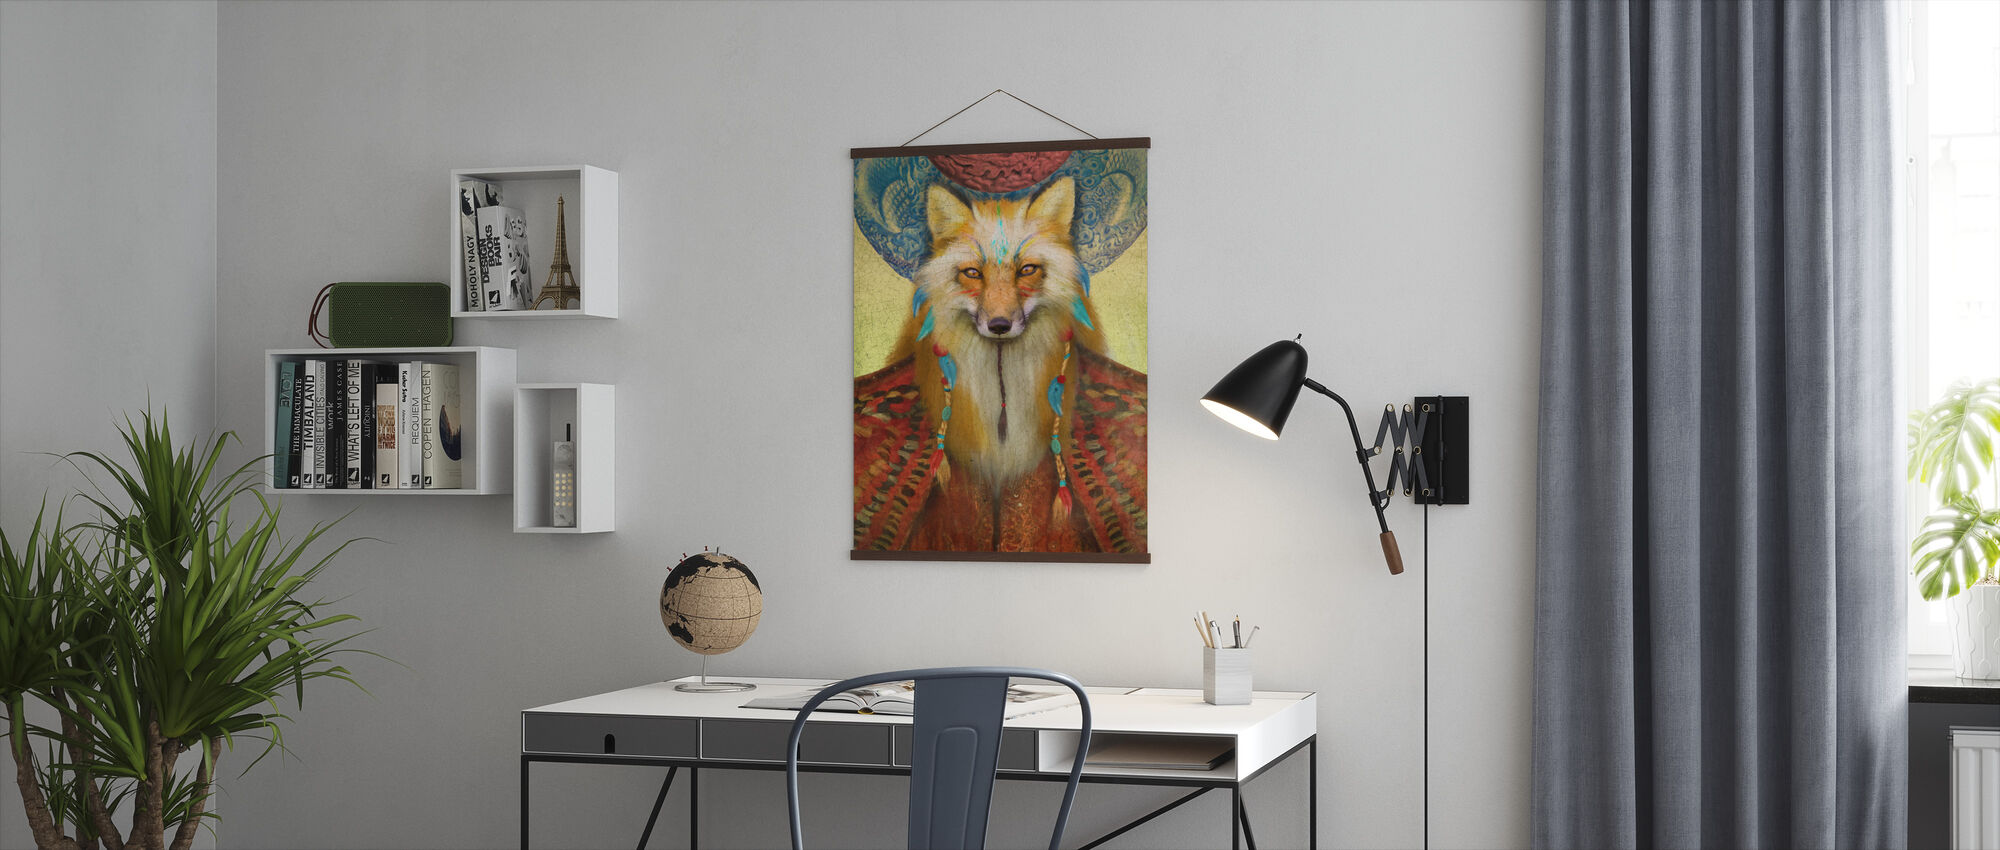 Wise Fox - Poster - Office